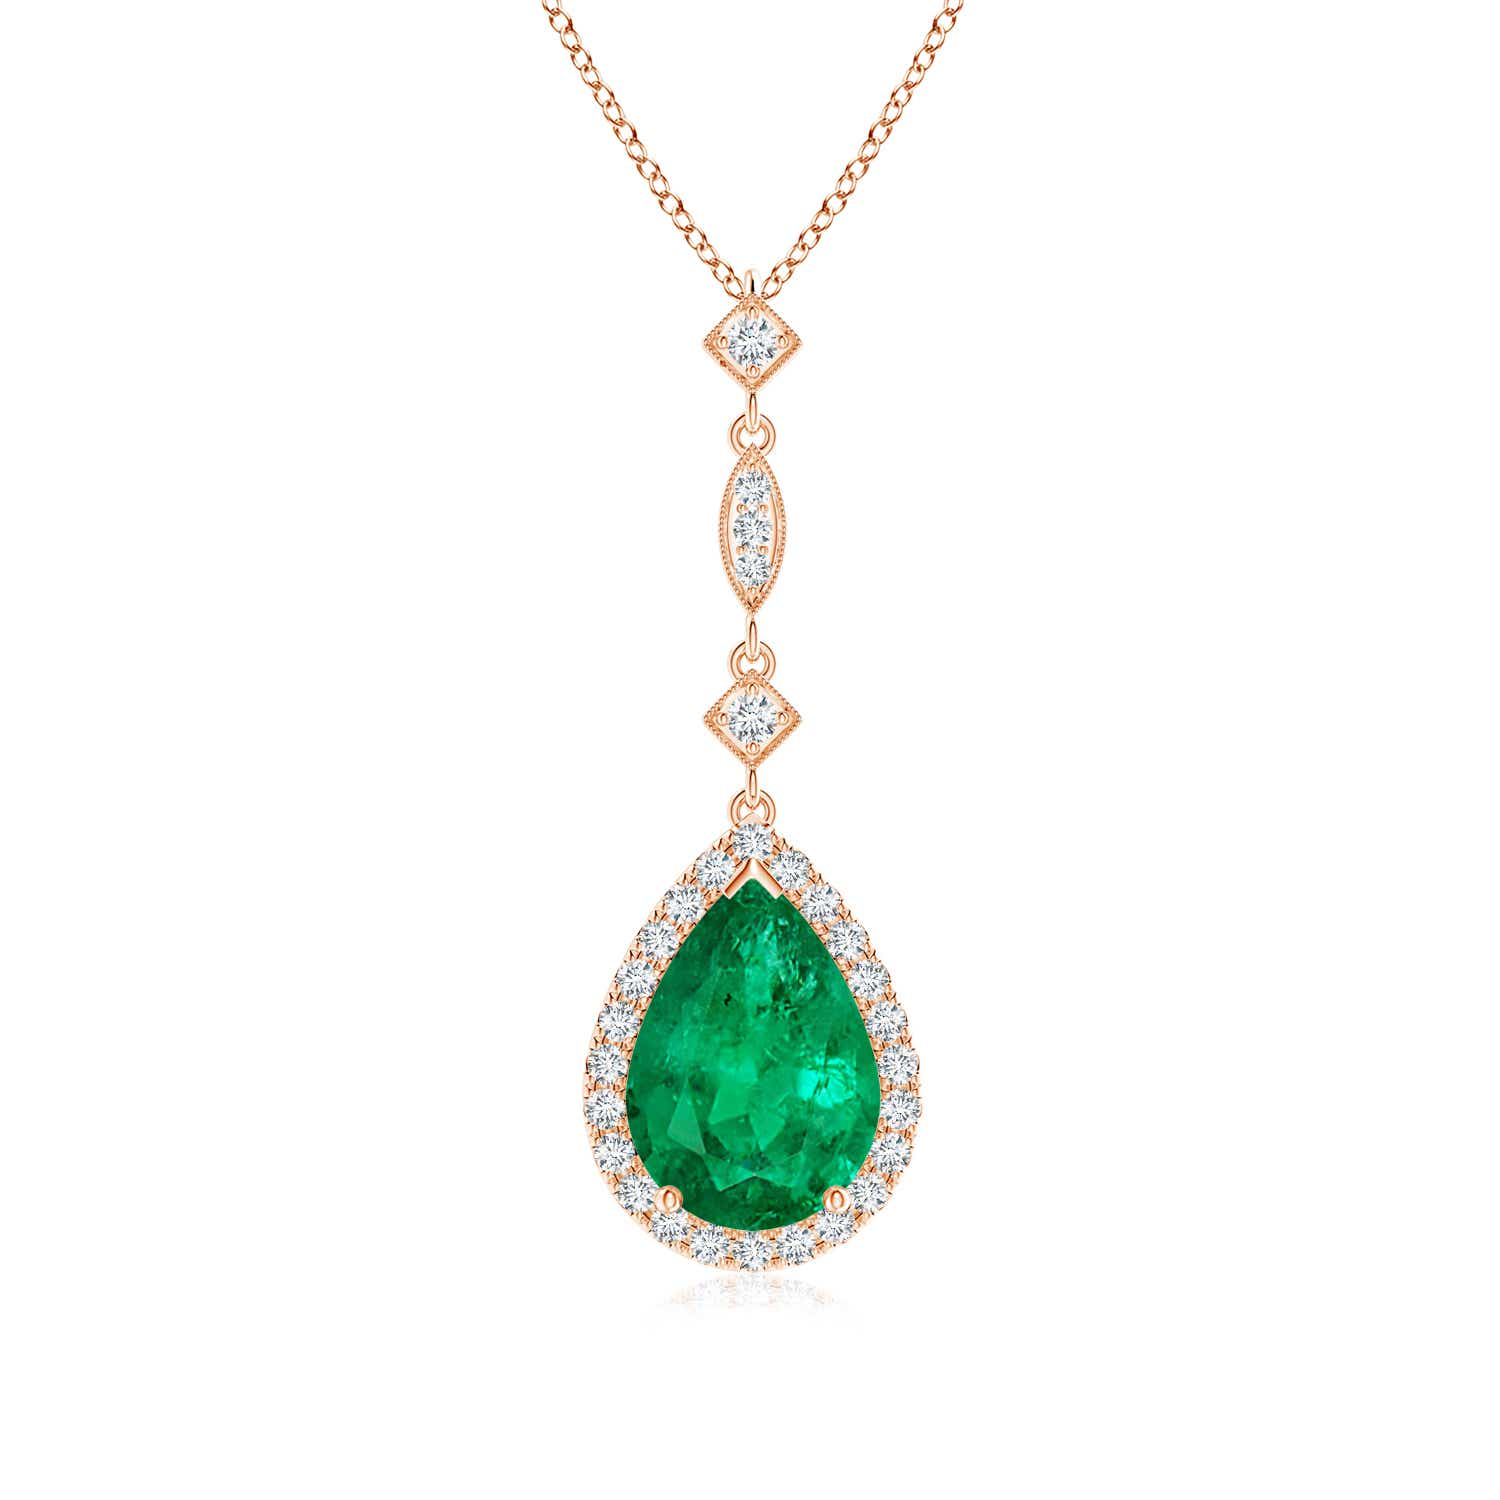 GIA Certified Emerald Teardrop Pendant with Diamond Accents